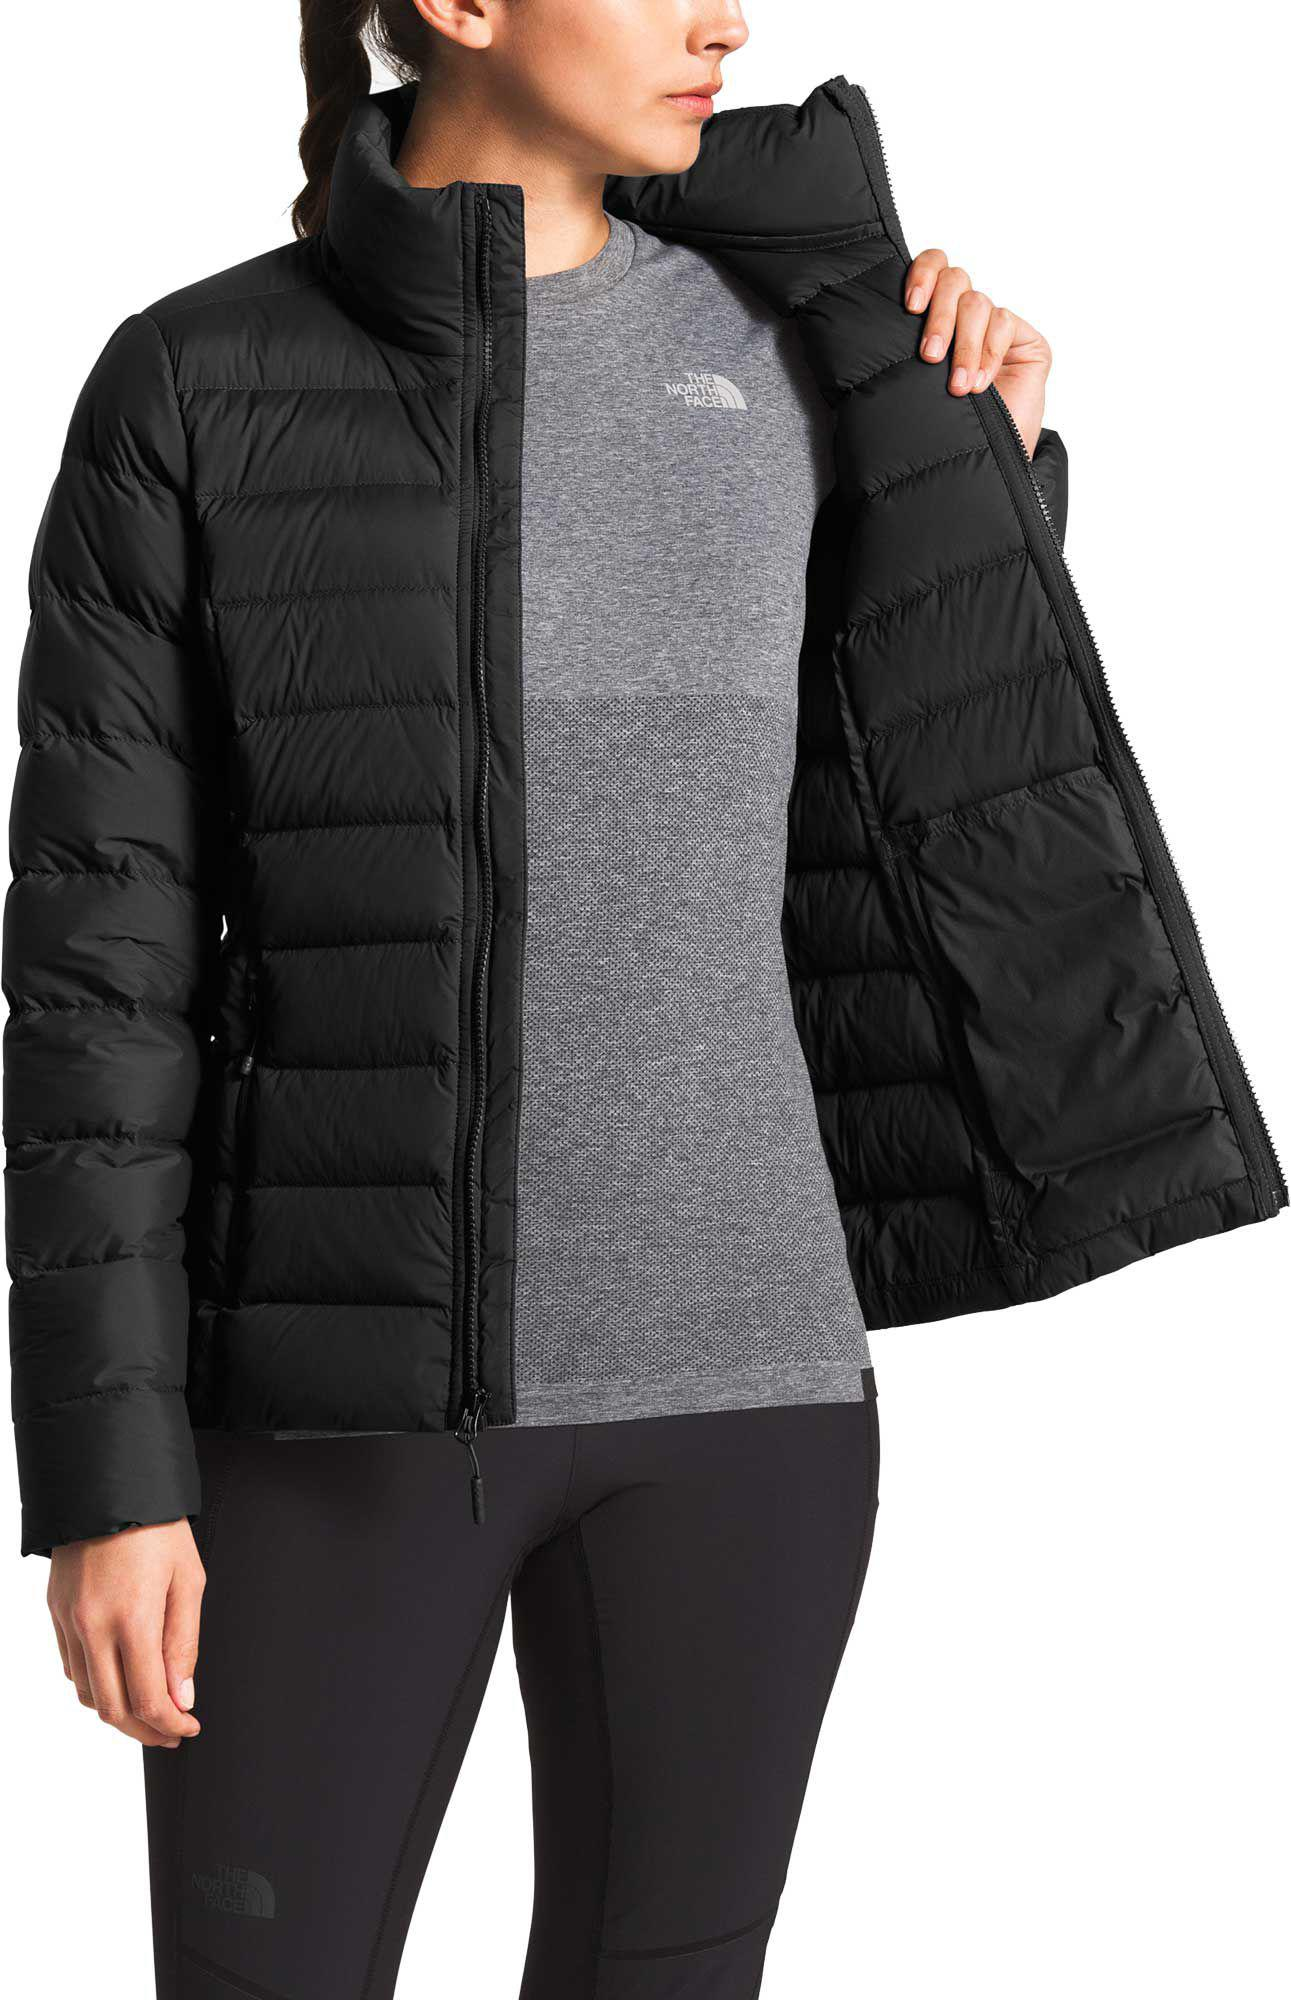 The North Face - Black Stretch Down Jacket - Lyst. View fullscreen a36cd20e1